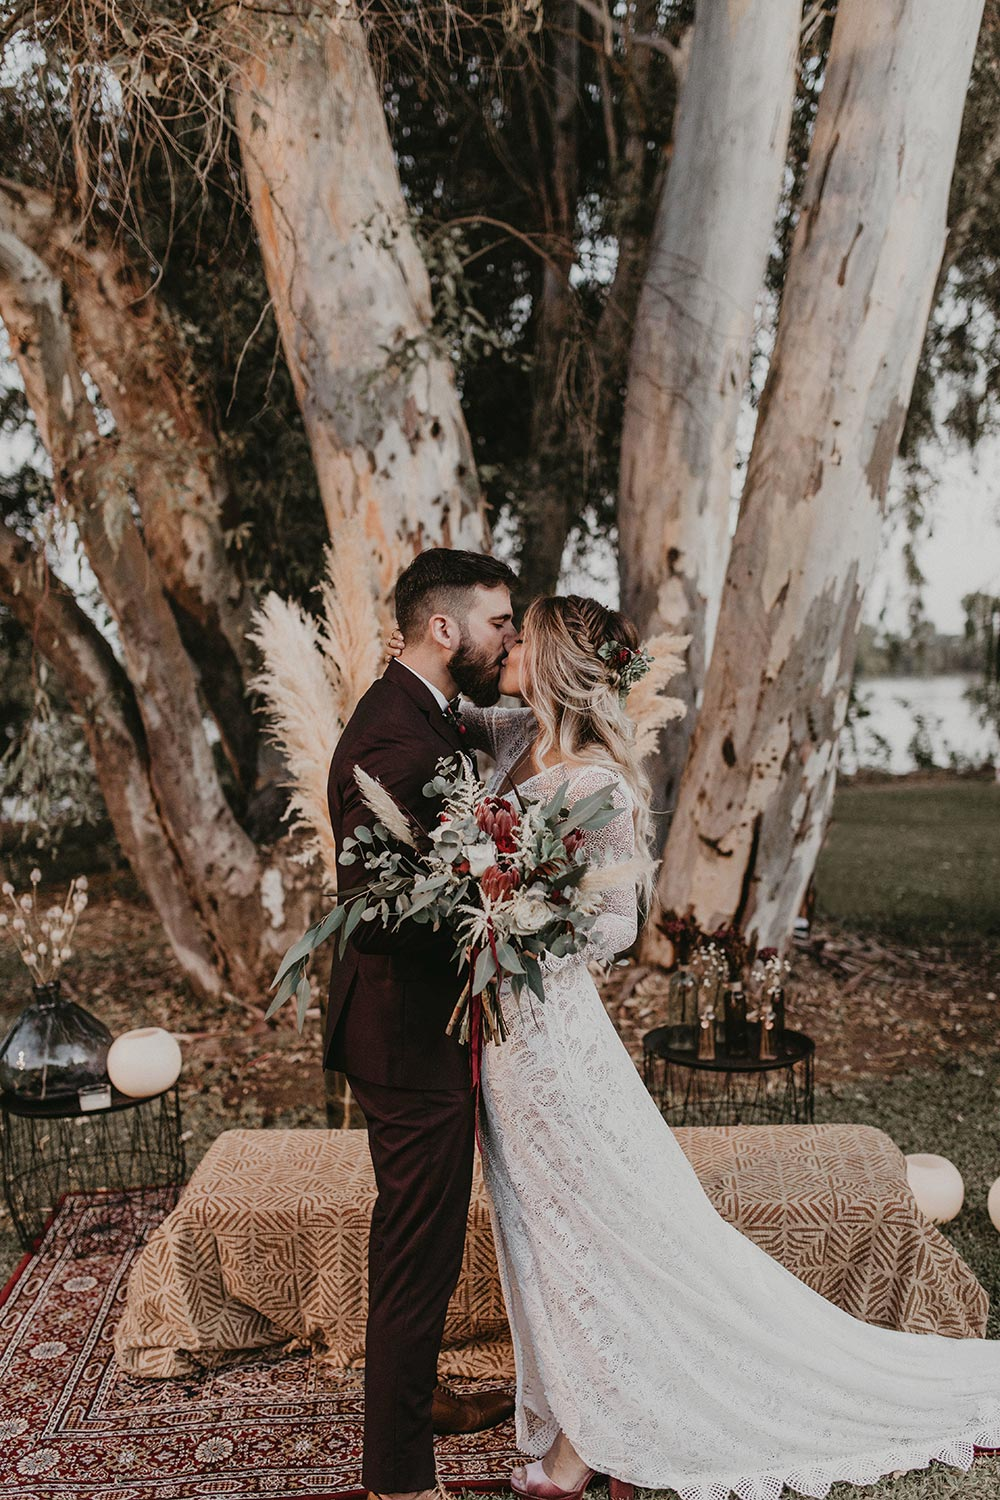 lace wedding dress and burgundy groom suit with pampas grass wedding backdrop